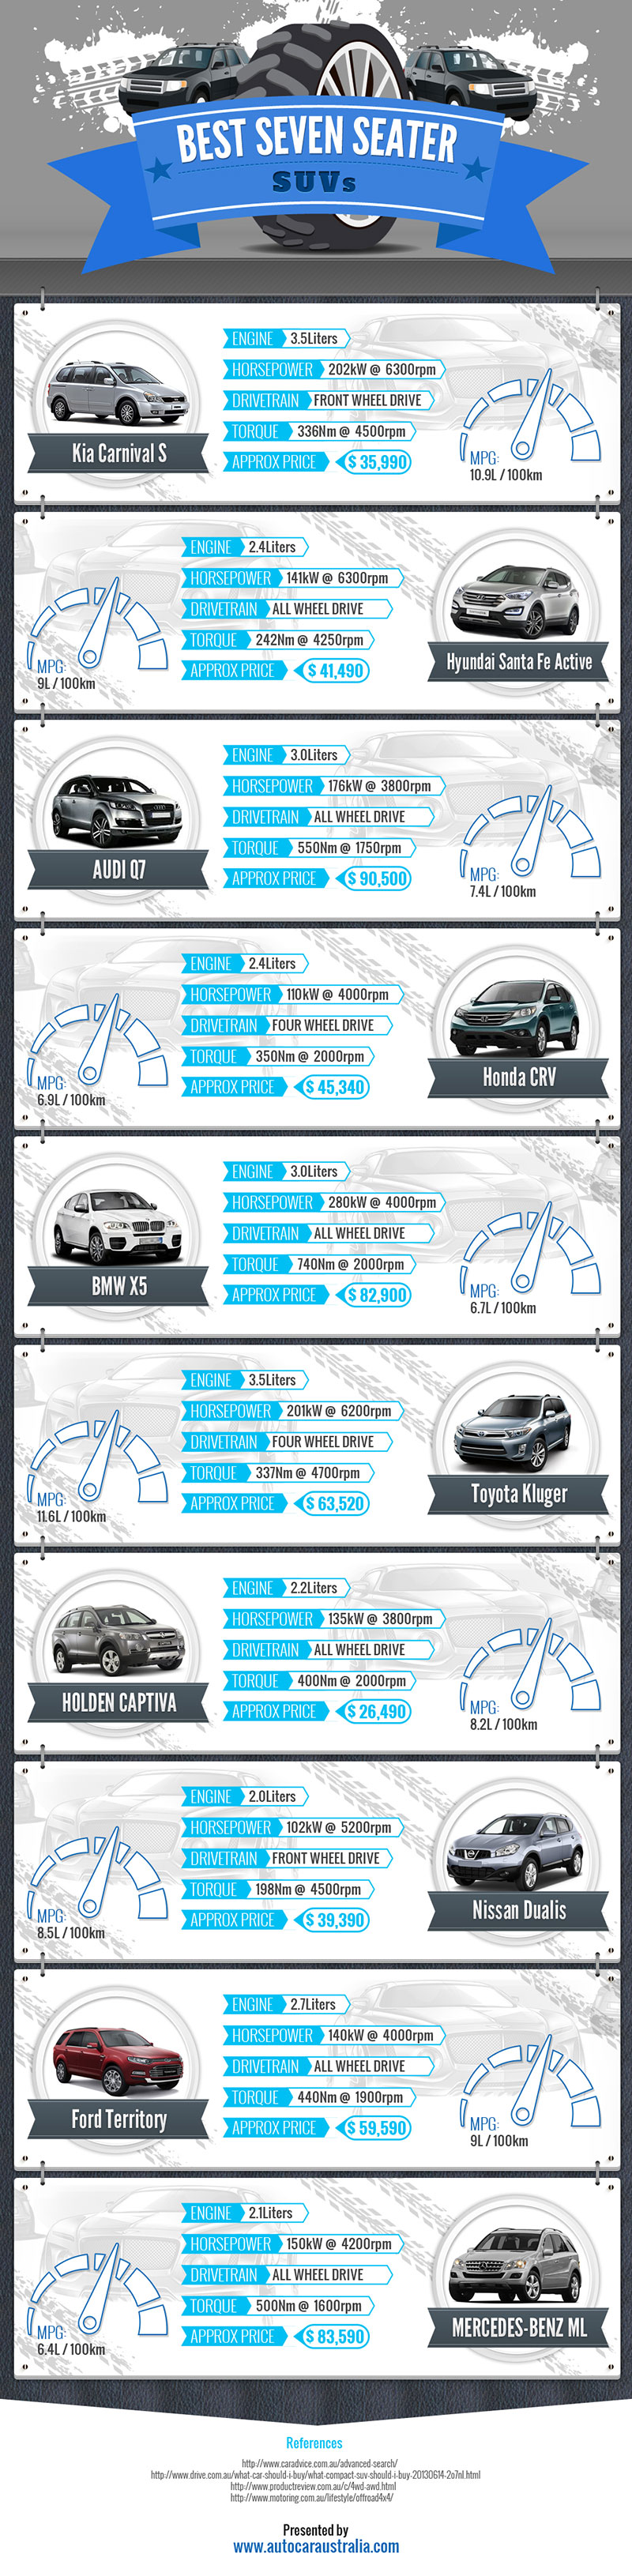 Nissan Dualis Review - An Infographic from Auto Car Australia